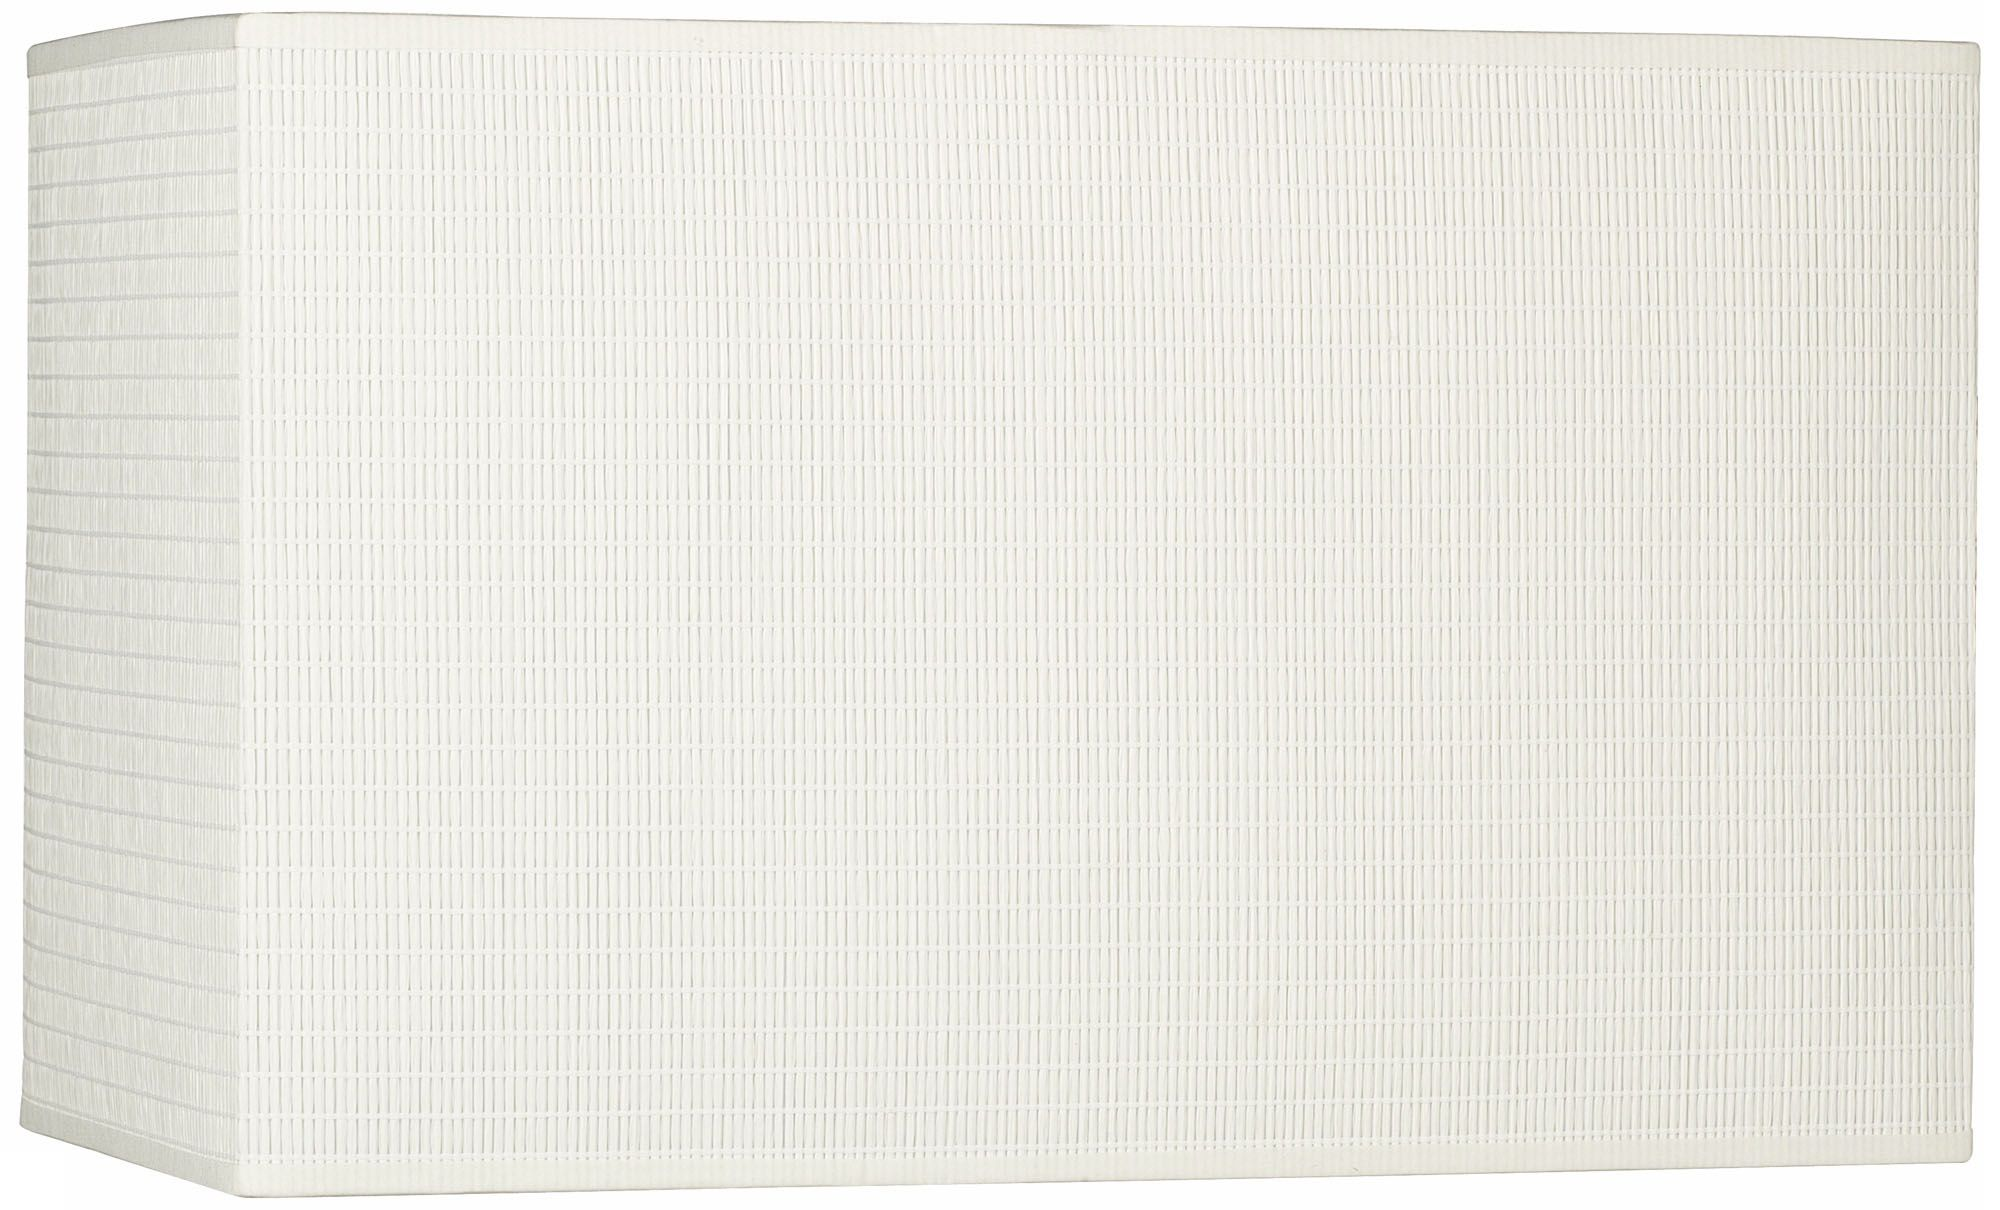 Off White Rectangular Paper Shade 8/16x8/16x10 (Spider)